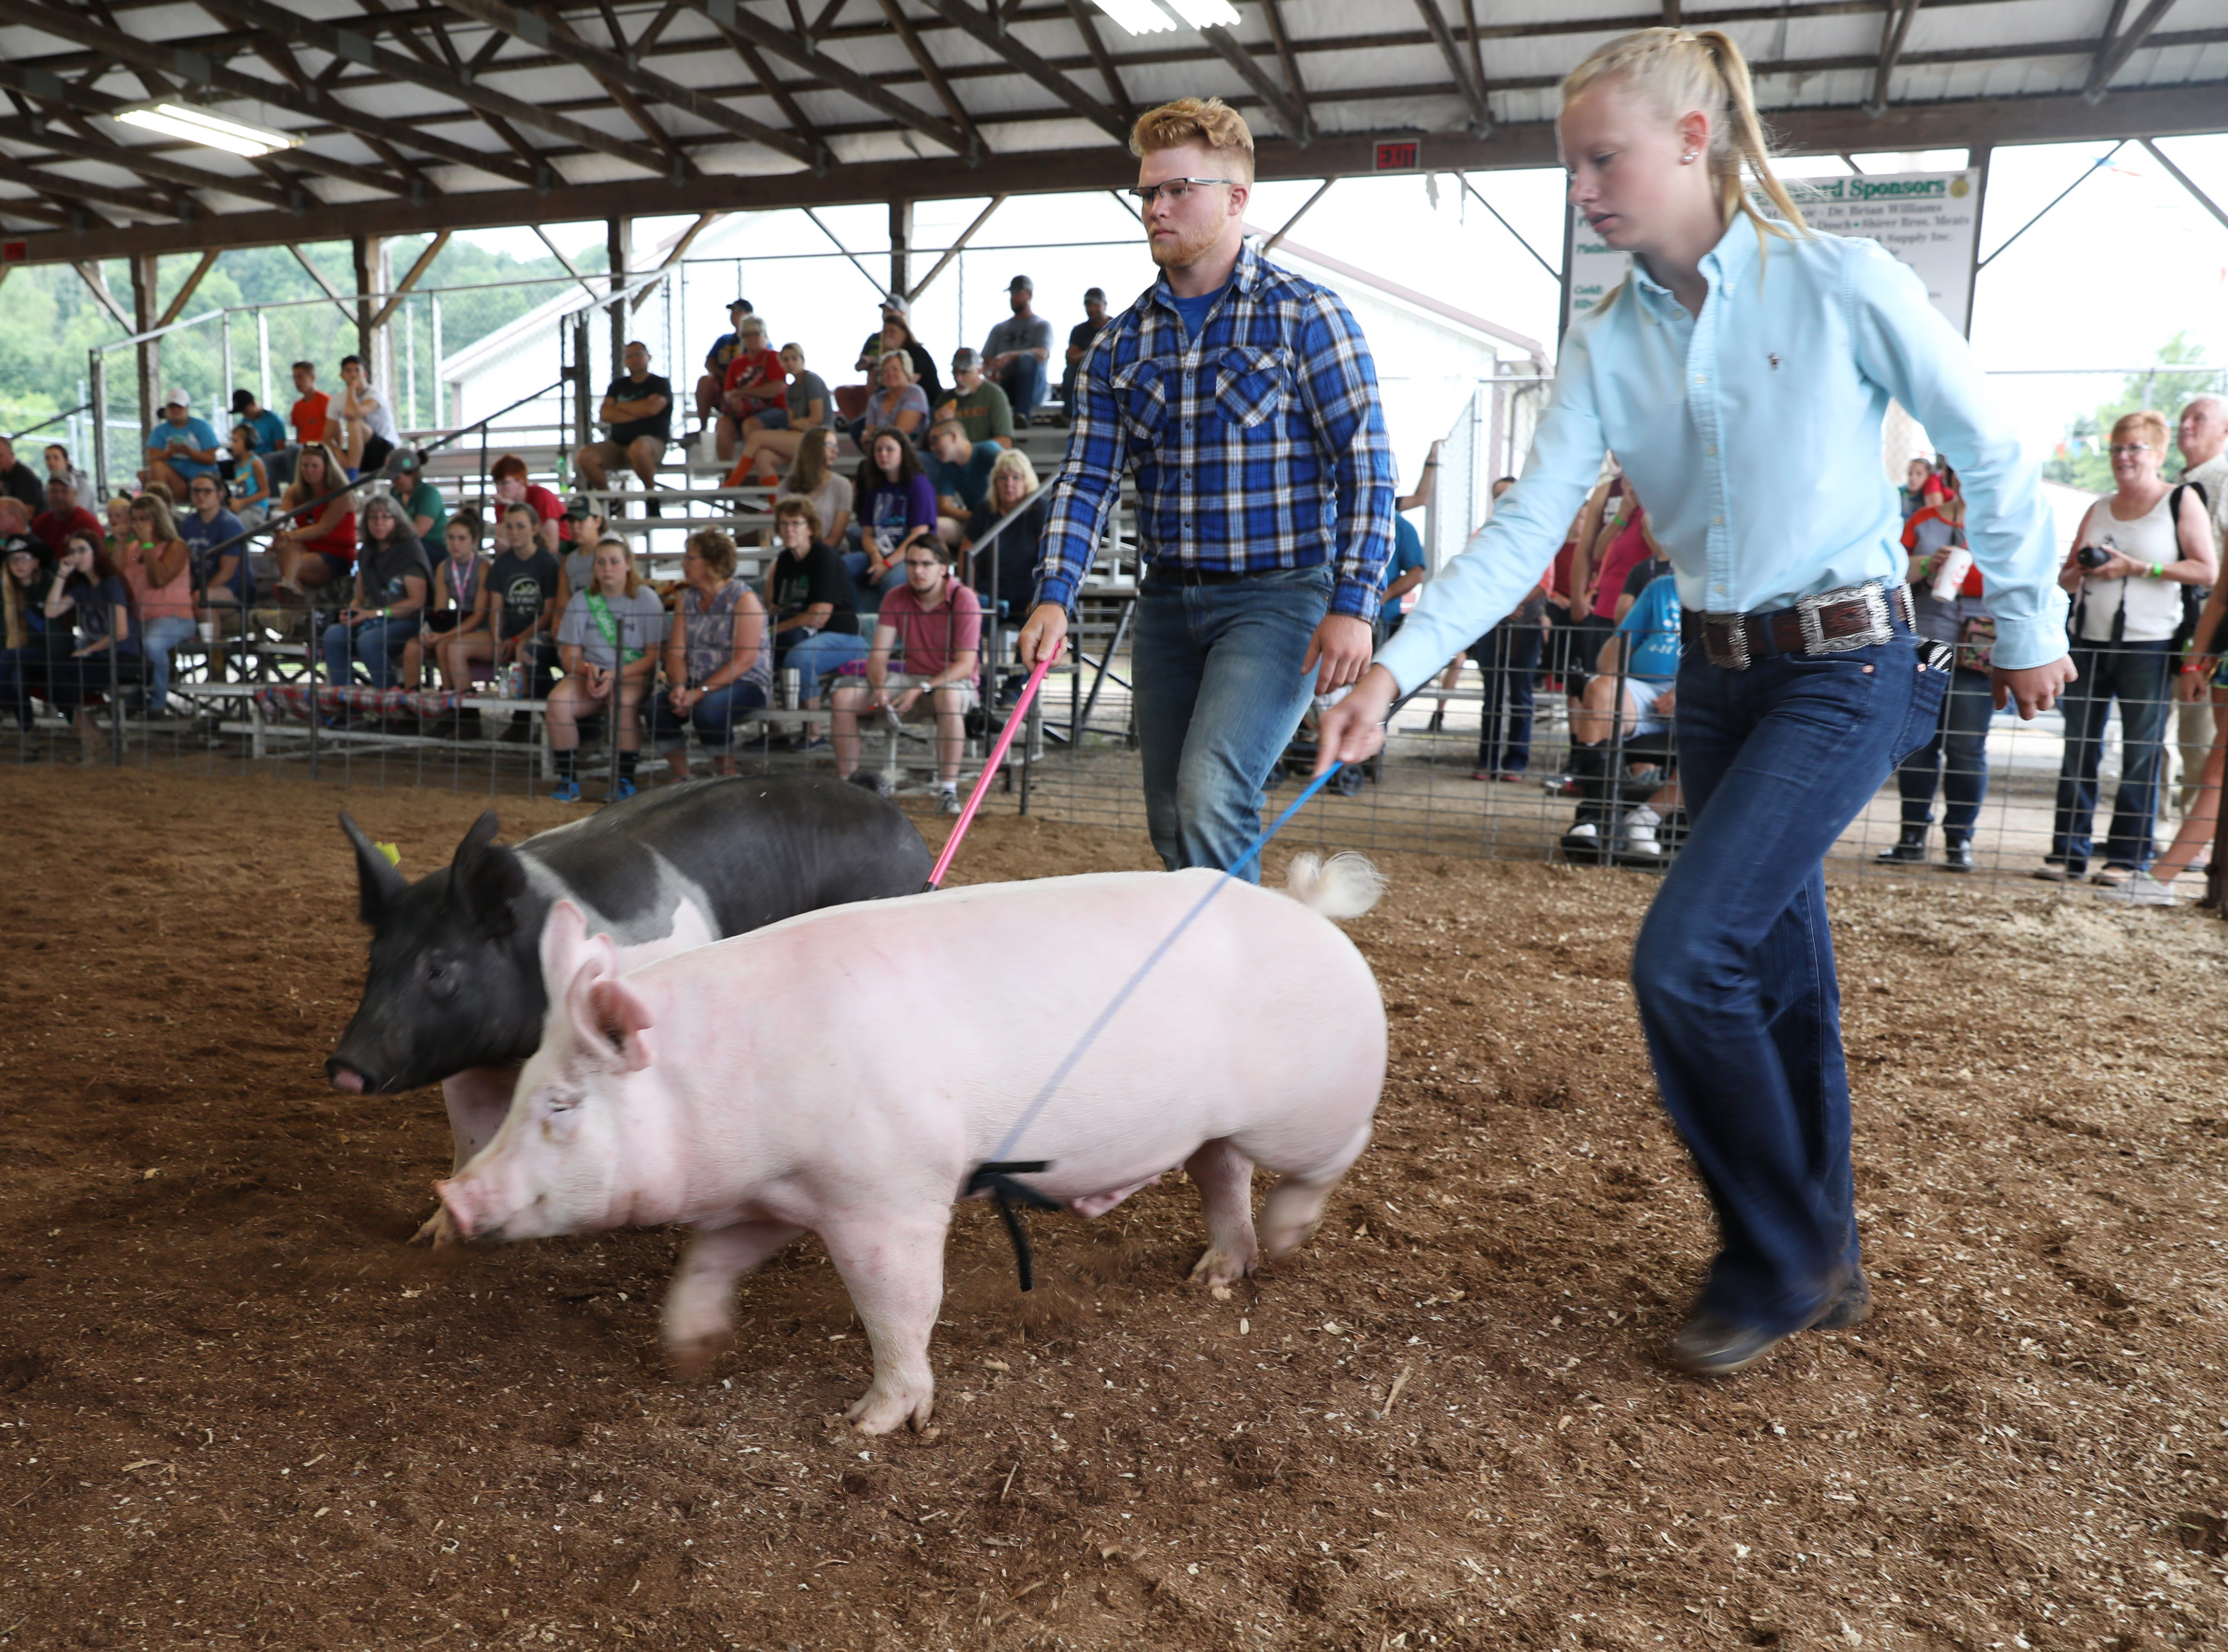 Kamryn Kreis and Tyler McKenzie show hogs during the Showman of Showmen competition at the Muskingum County Fair on Friday.